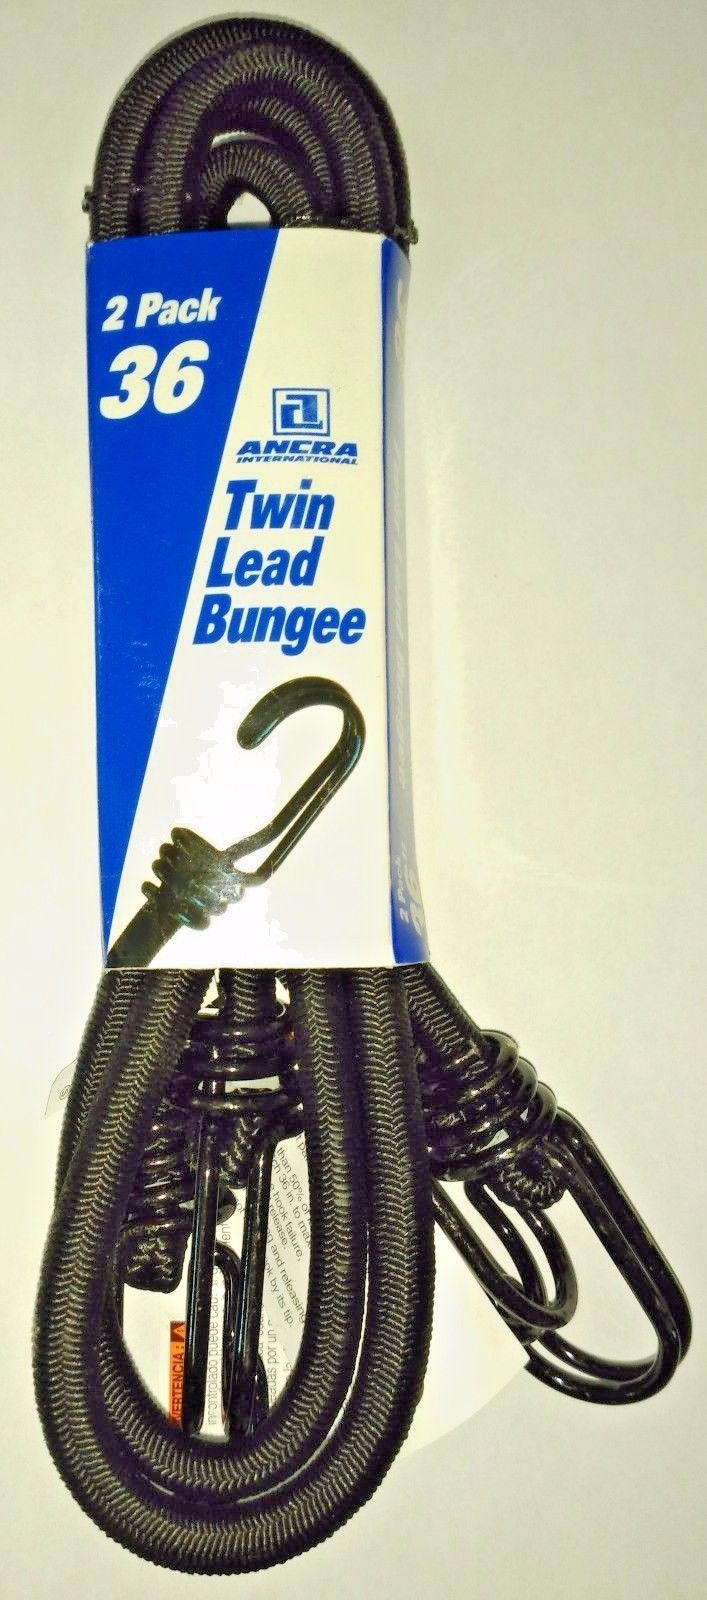 Ancra 95739 Twin Lead Bungee Cords, Black 2-Pack 36-Inch